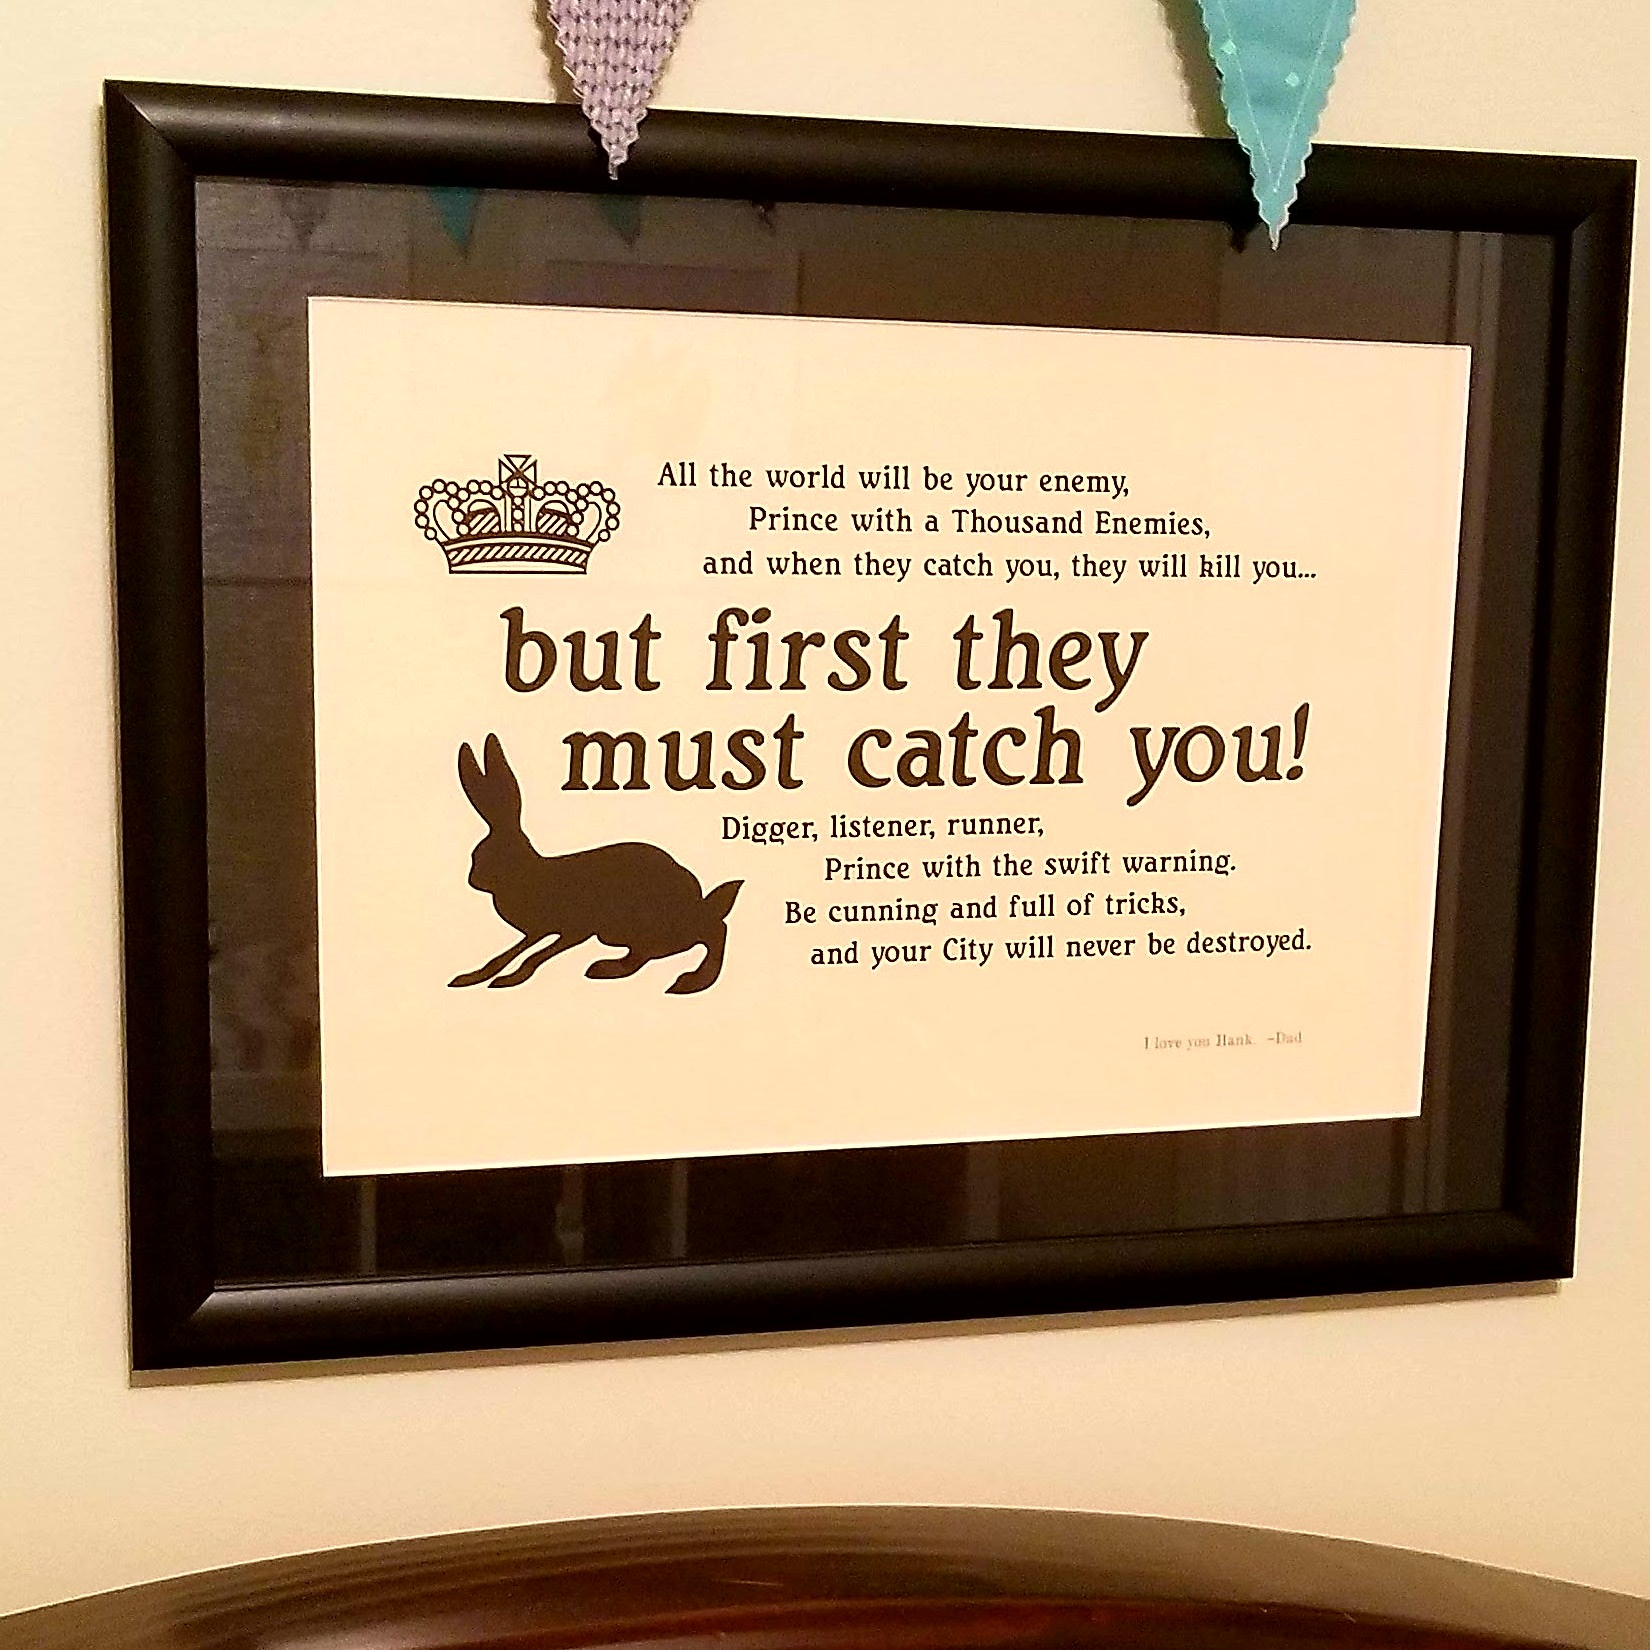 I read 'Watership Down' a couple times while my wife was pregnant. I made this for my son a week before he was born. He's 14 months now, and this has been above his crib his whole life.